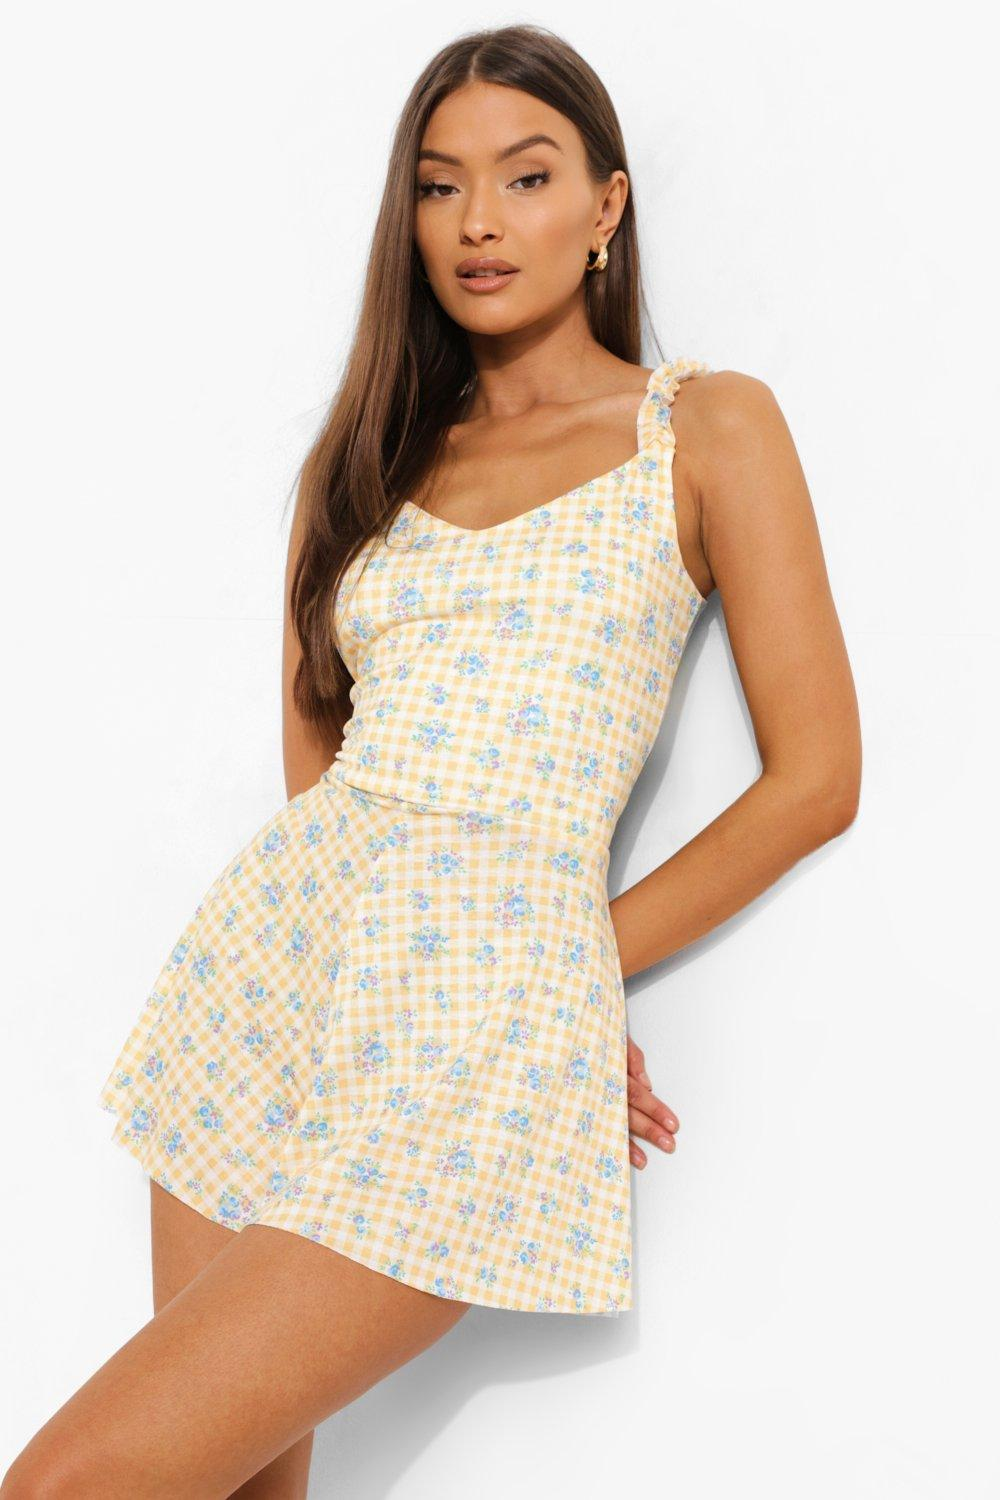 40s-50s Vintage Playsuits, Jumpsuits, Rompers History Womens Gingham Floral Frill Strap Flippy Romper - Yellow - 12 $14.40 AT vintagedancer.com